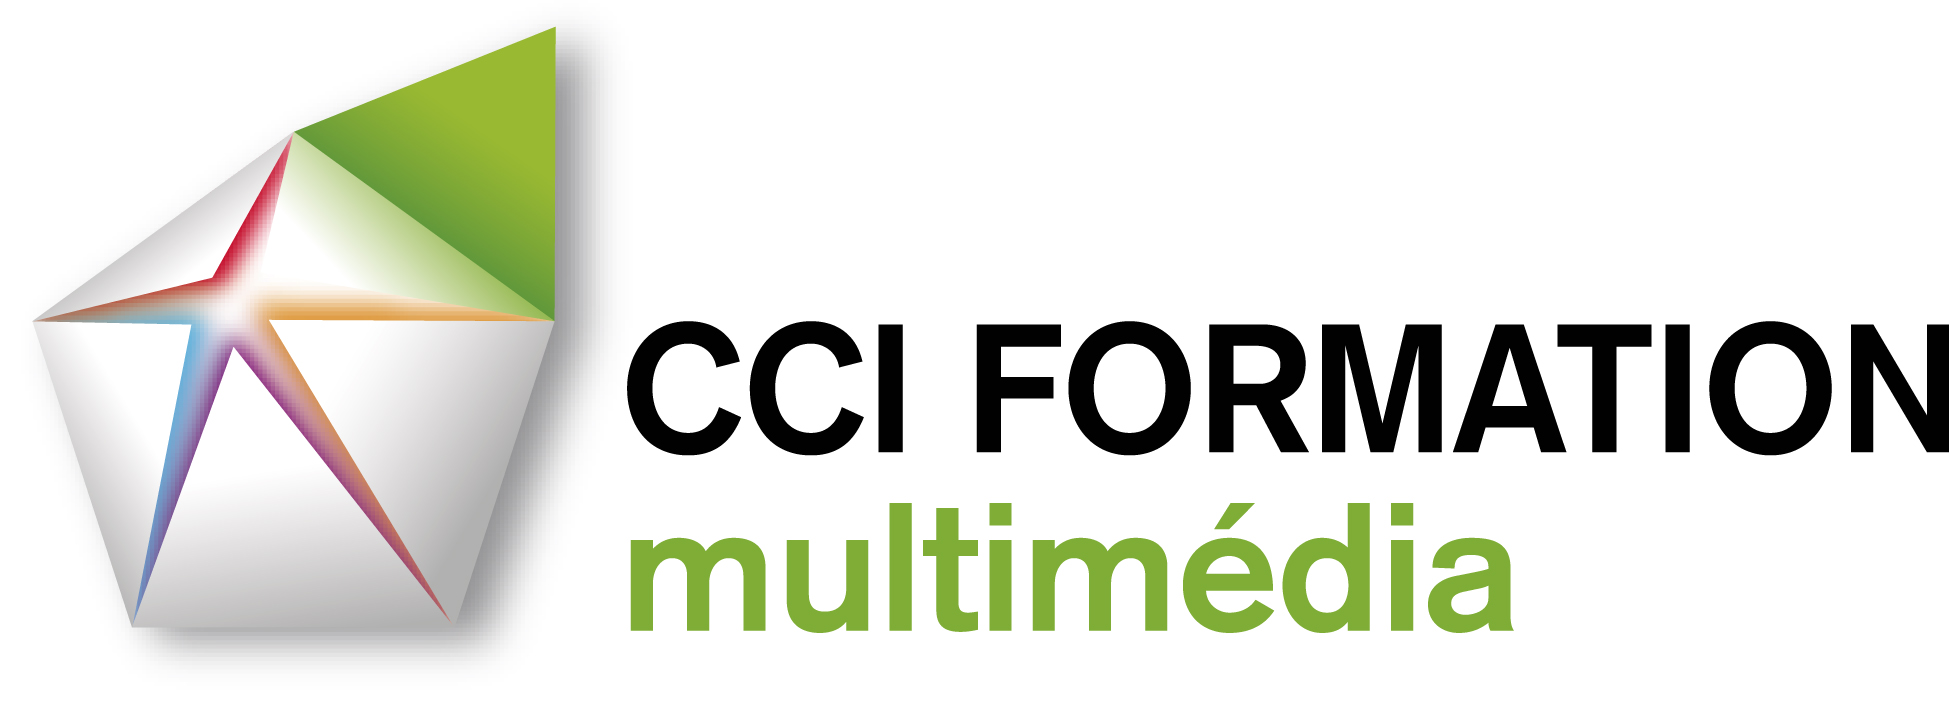 CCI_FORMATION_MULTIMEDIA